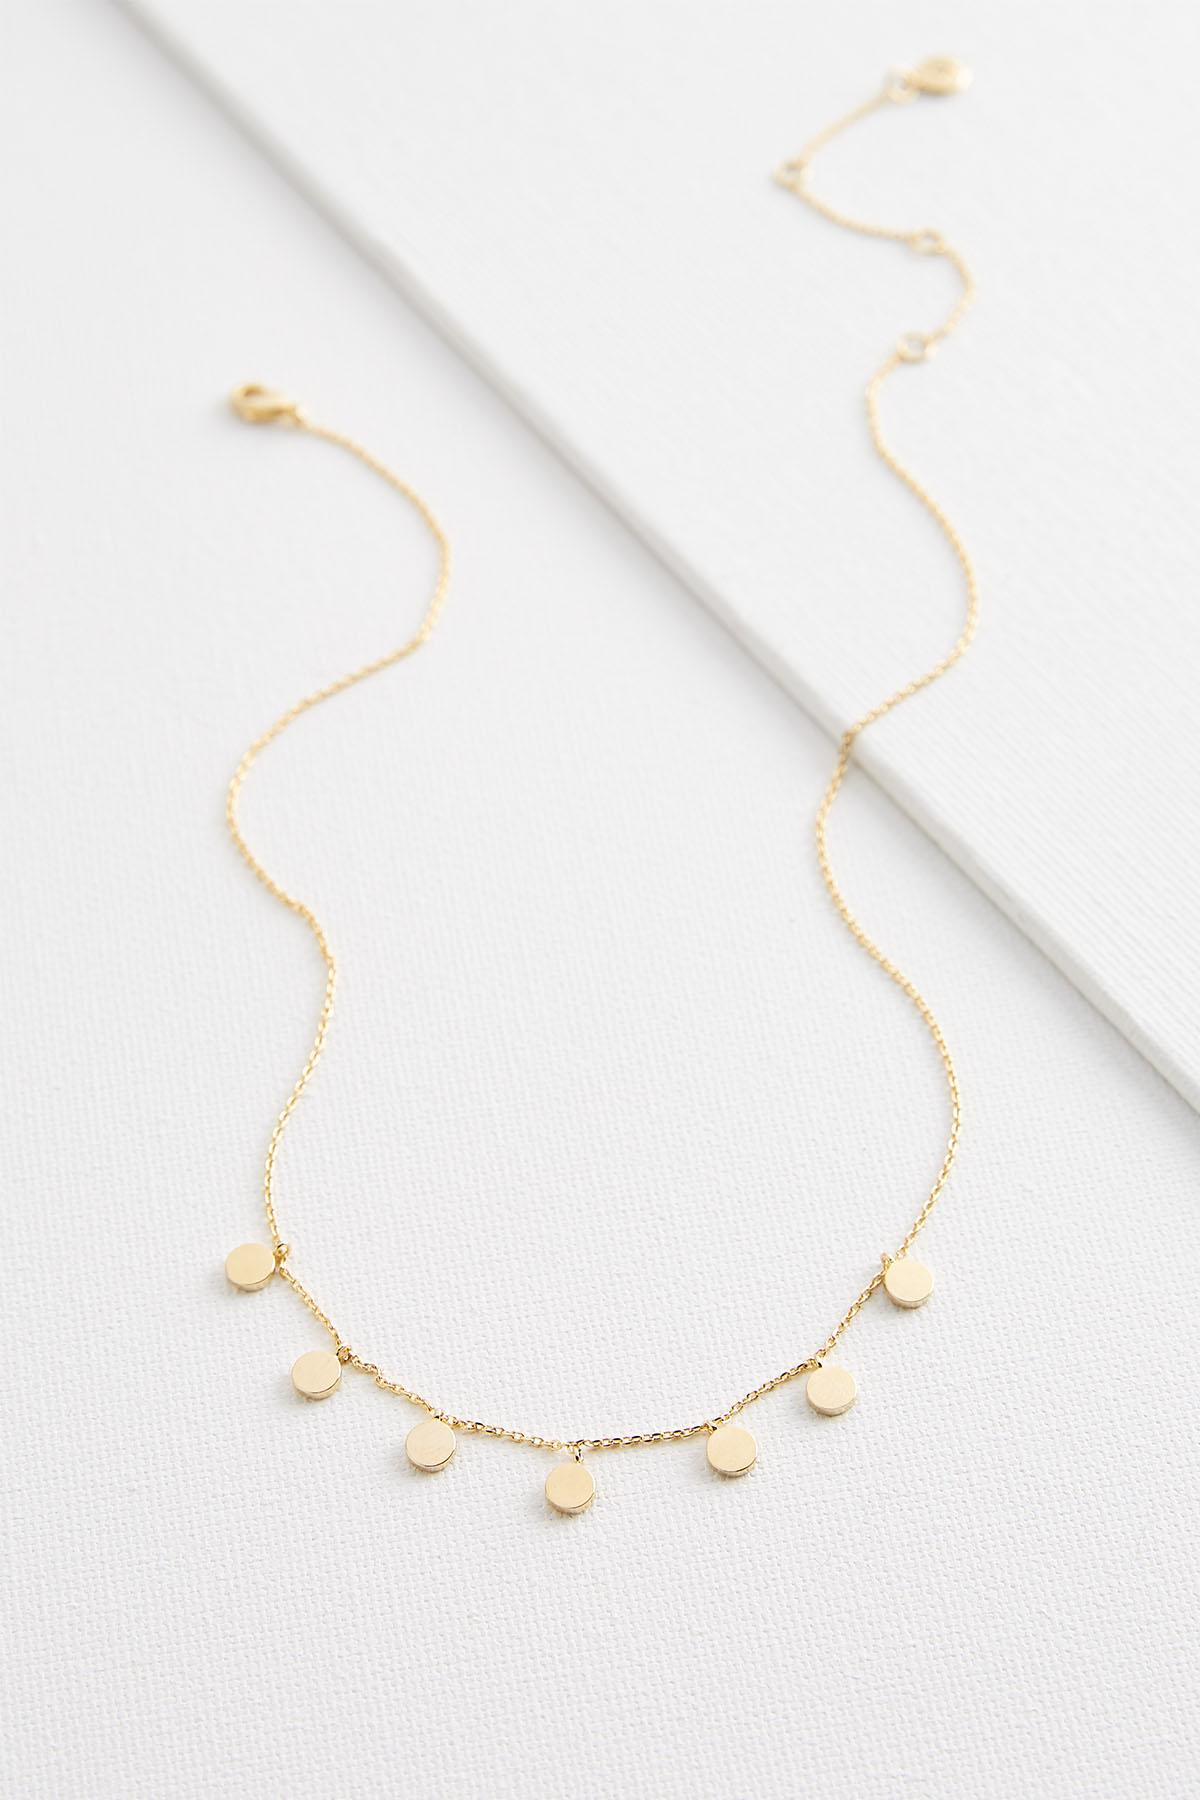 Dangling Disc Necklace